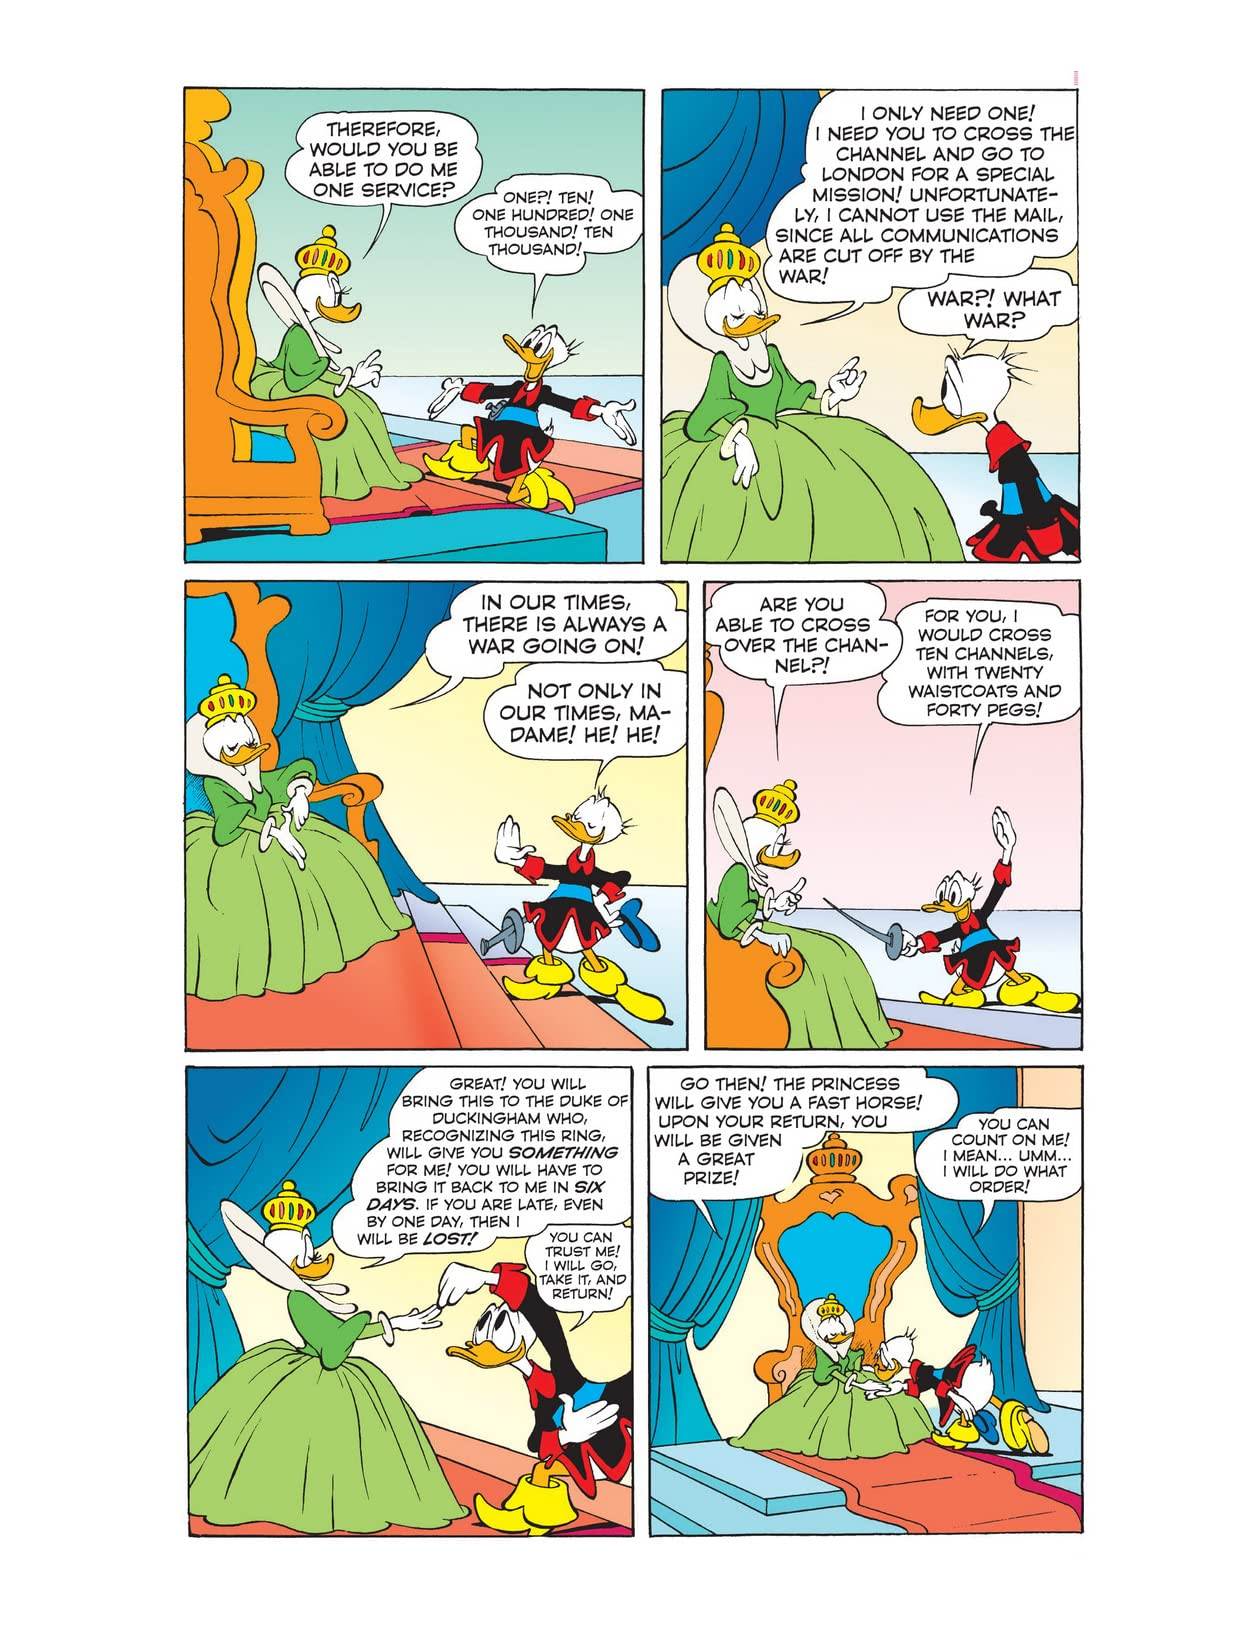 Donald Duck and the Three Musketeers #2